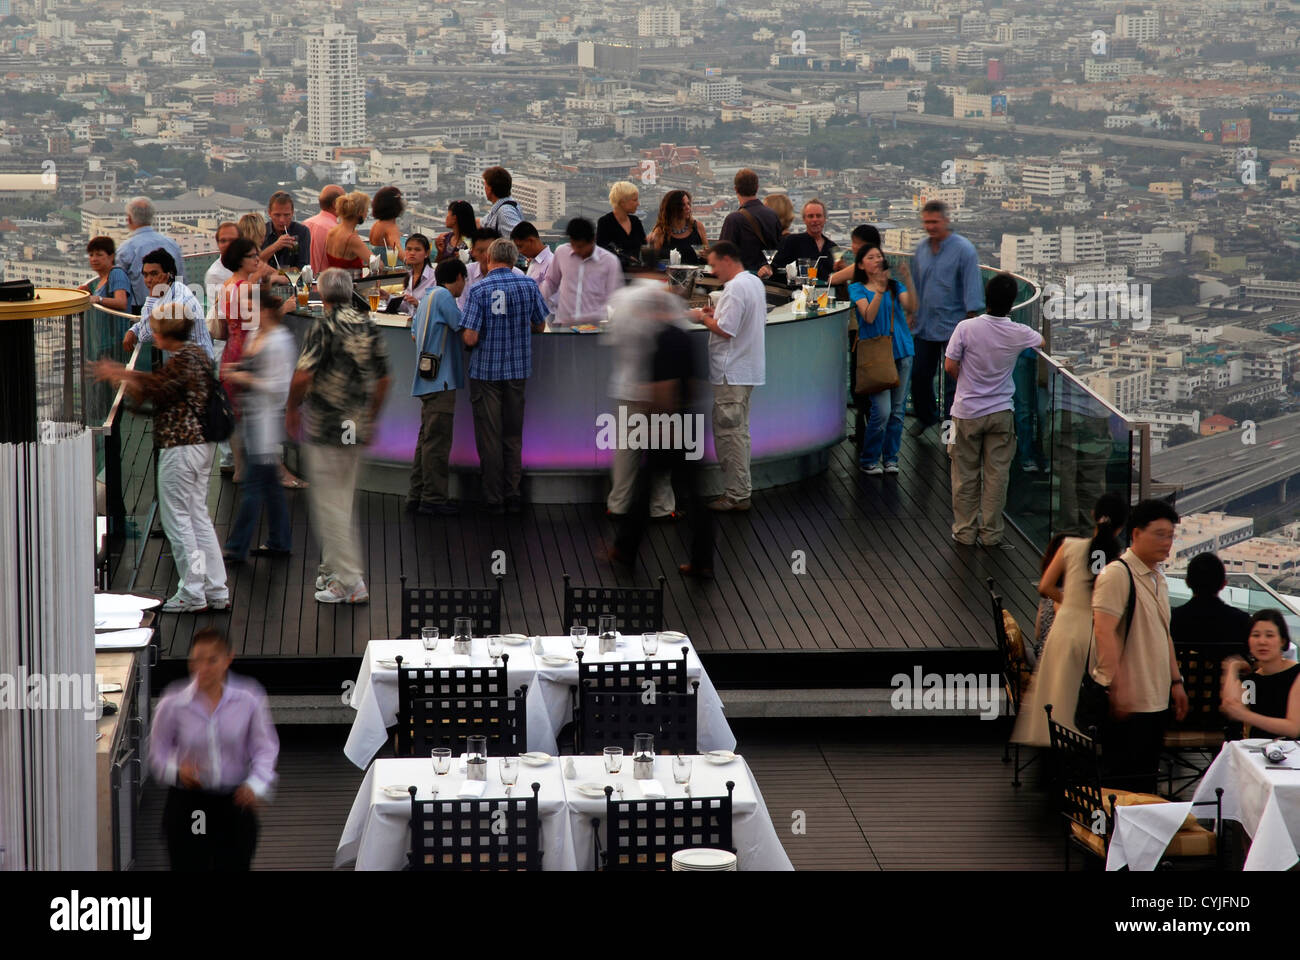 View, Panoramic, people, Nightlife, Bangkok, Sirocco, Dome,  Sky Bar, Sight, Thailand, Asia - Stock Image